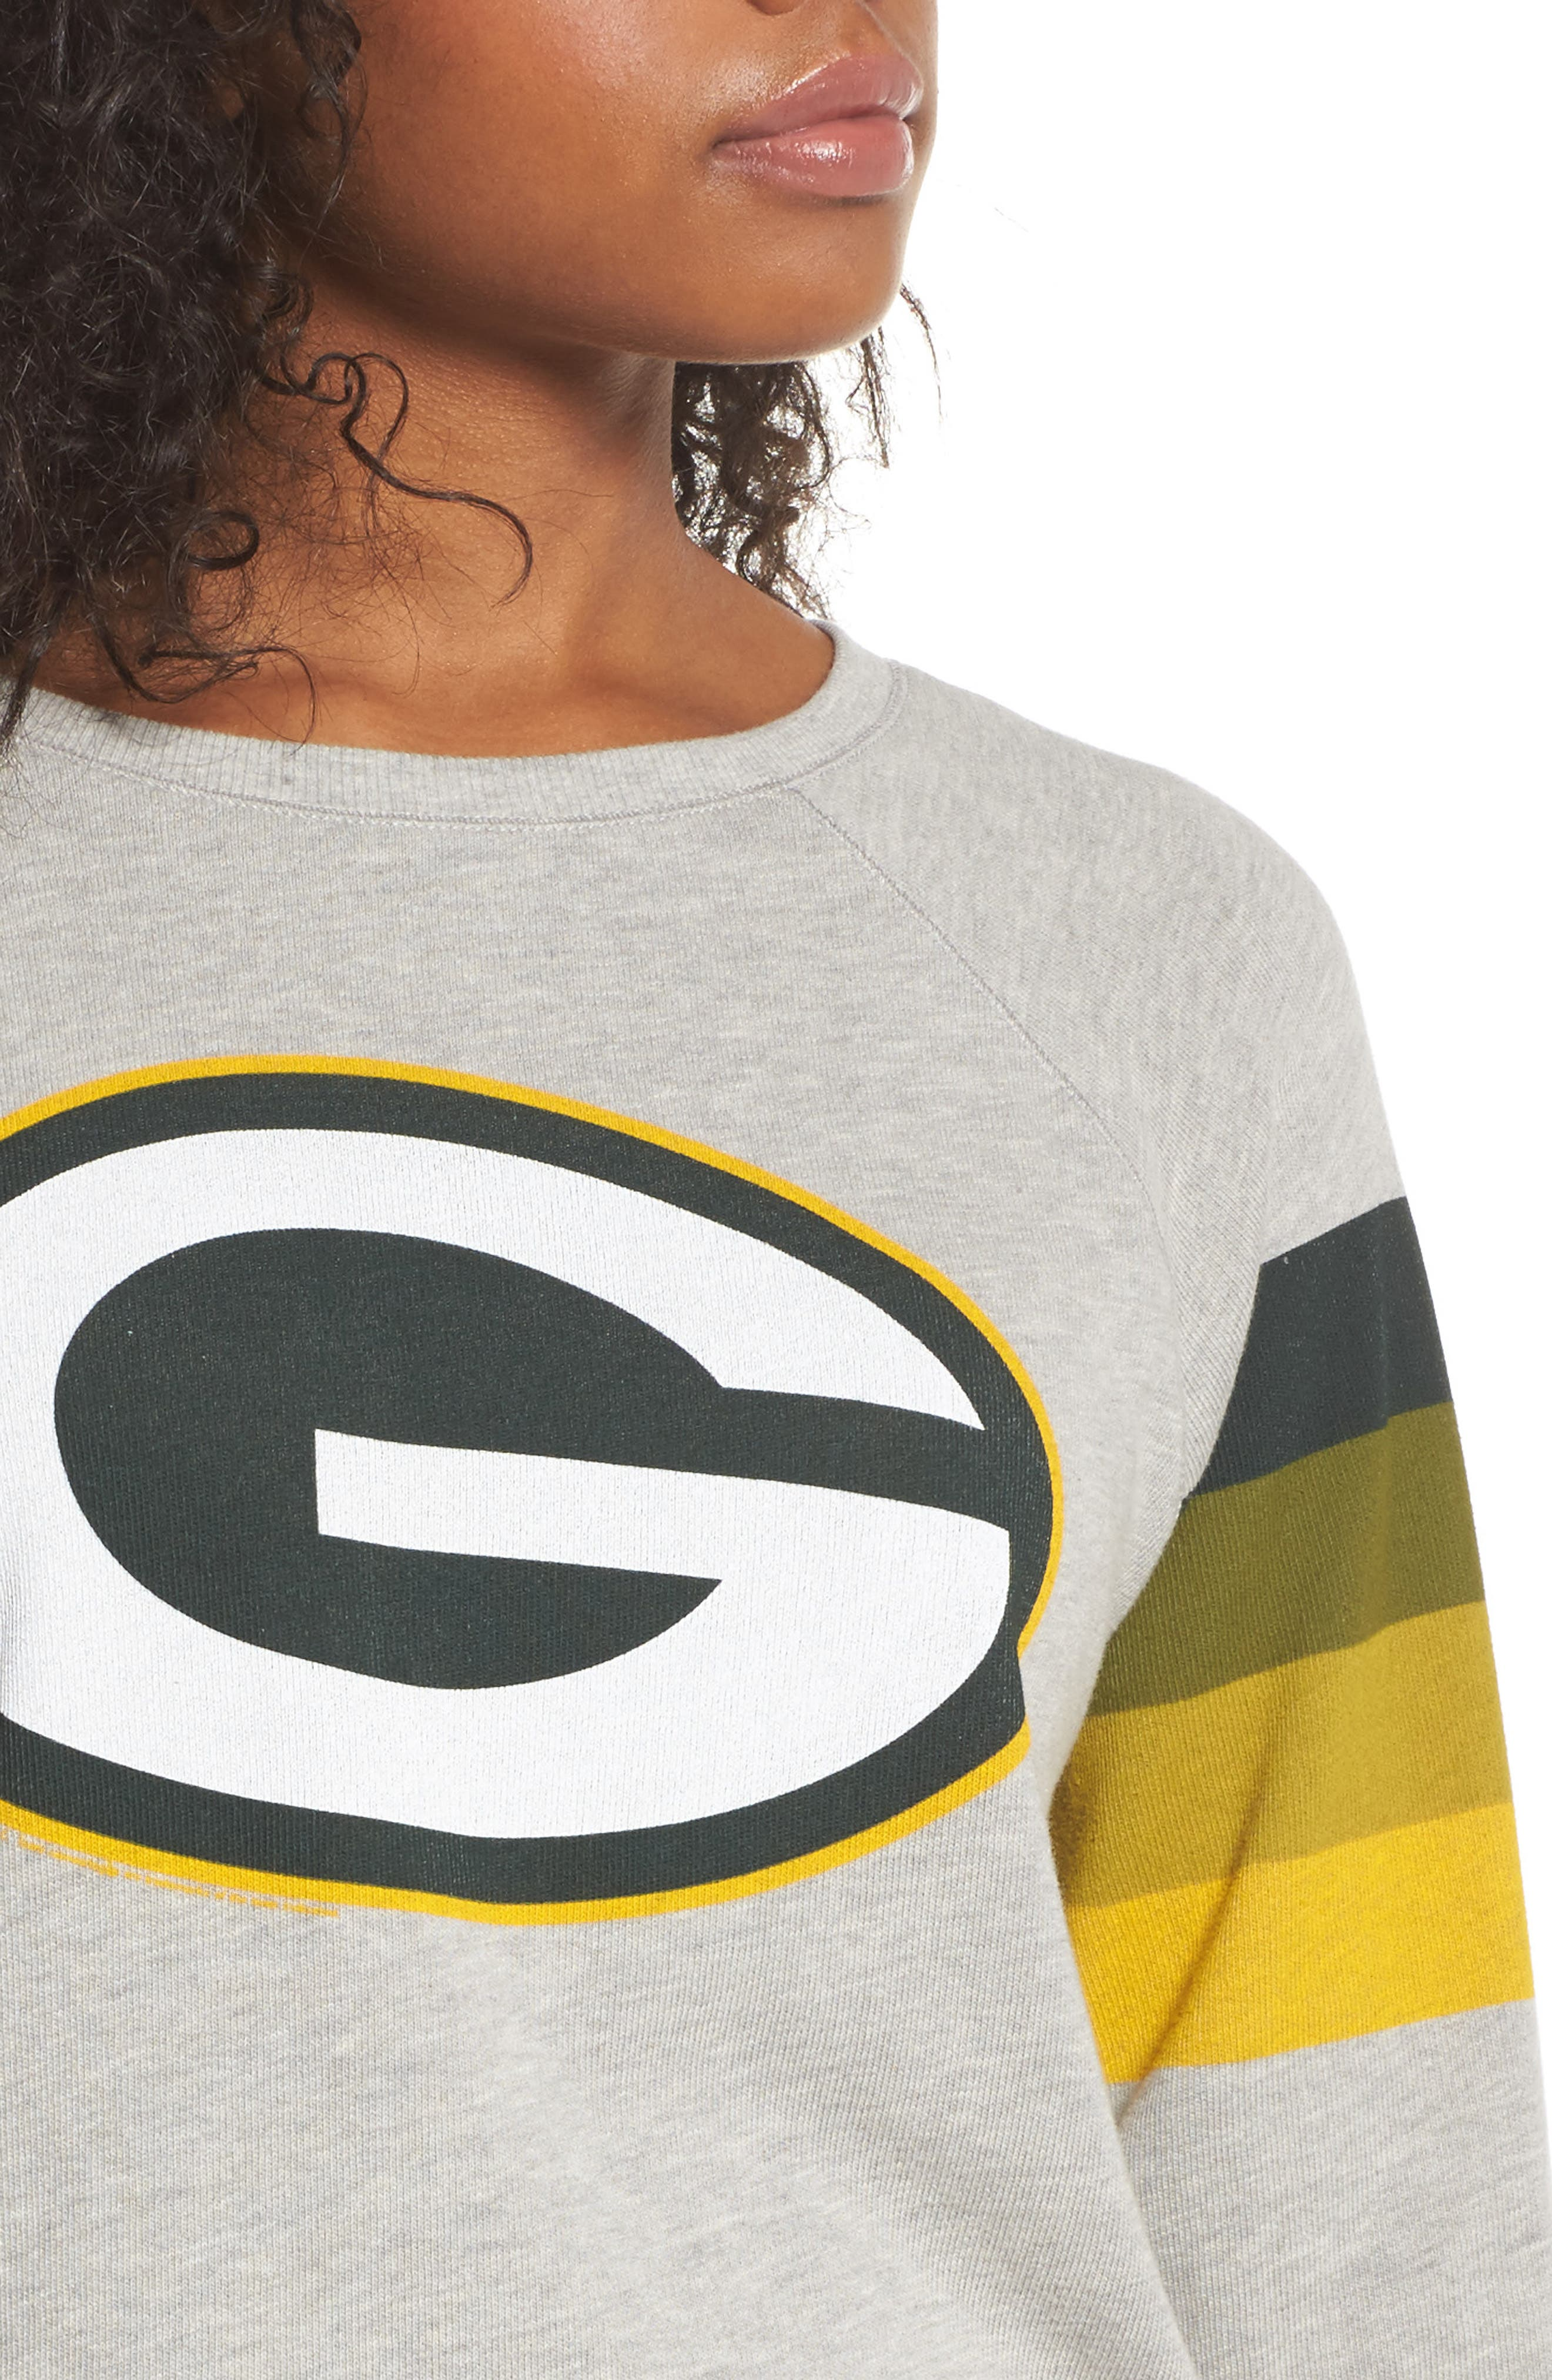 NF Green Bay Packers Hacci Sweatshirt,                             Alternate thumbnail 4, color,                             030